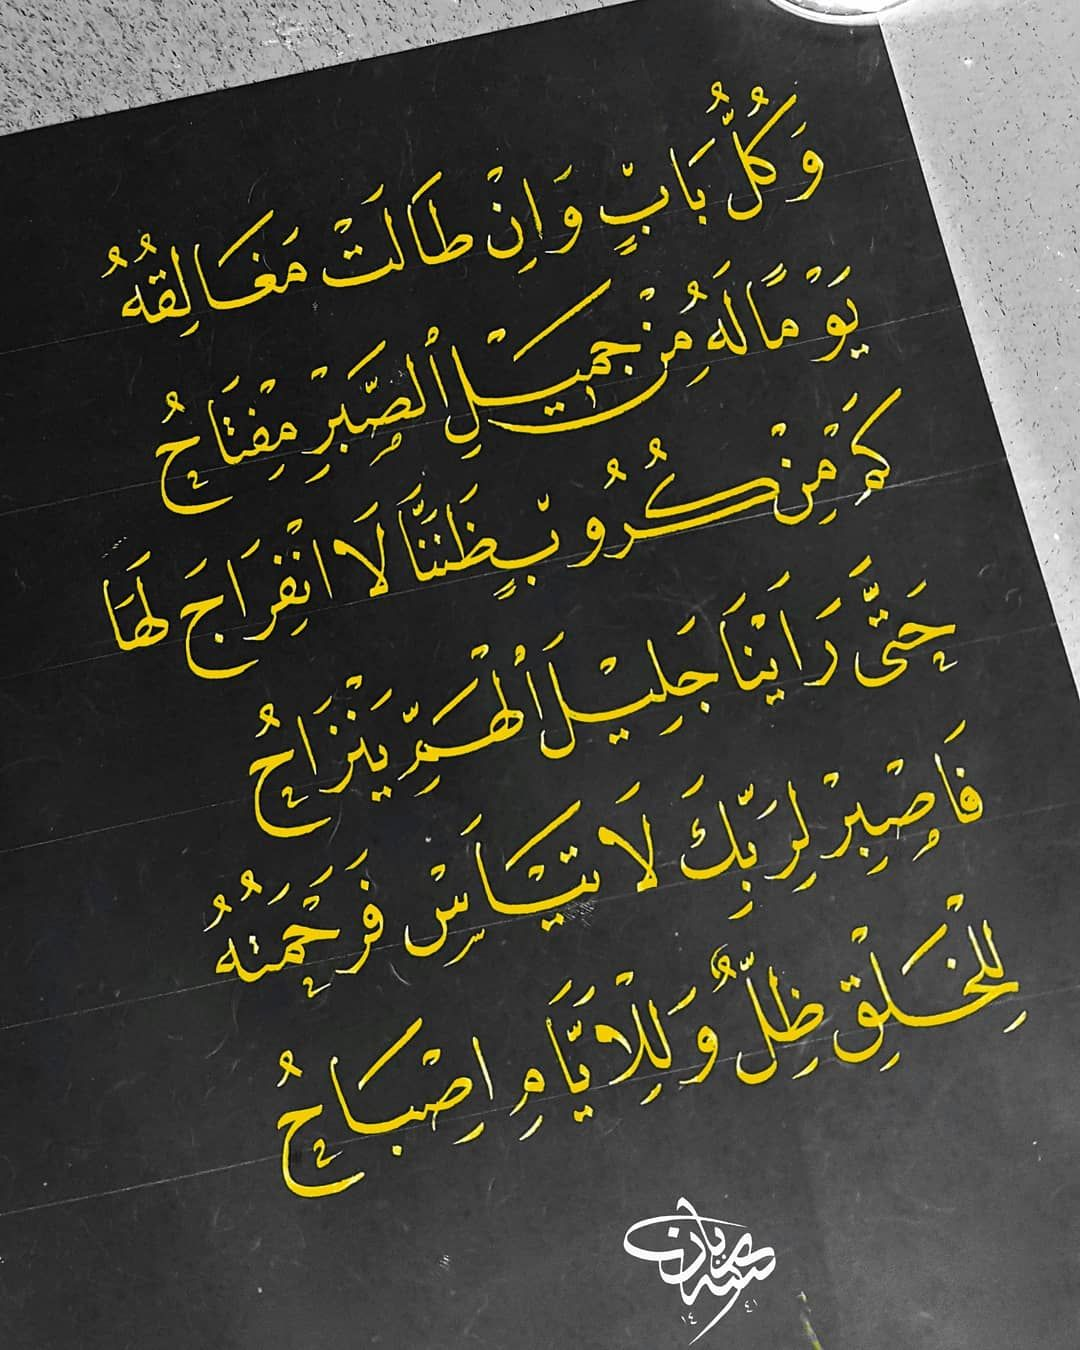 Pin By Ahlam Mohammed On Arabic In 2020 Blessing Words Arabic Poetry Words Quotes